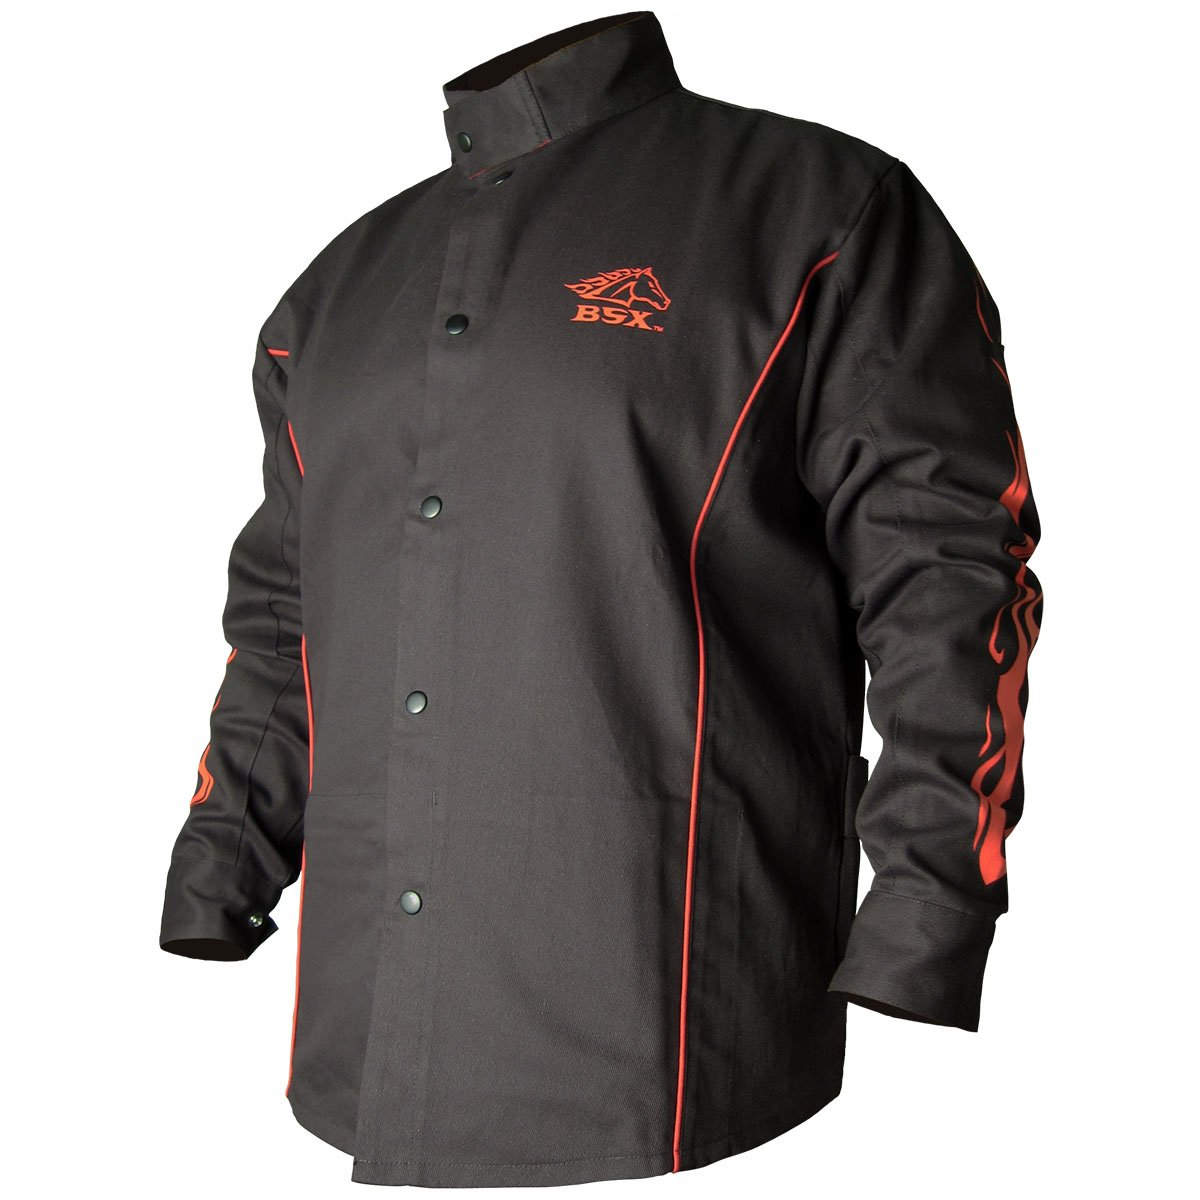 Welding fire resistant jacket